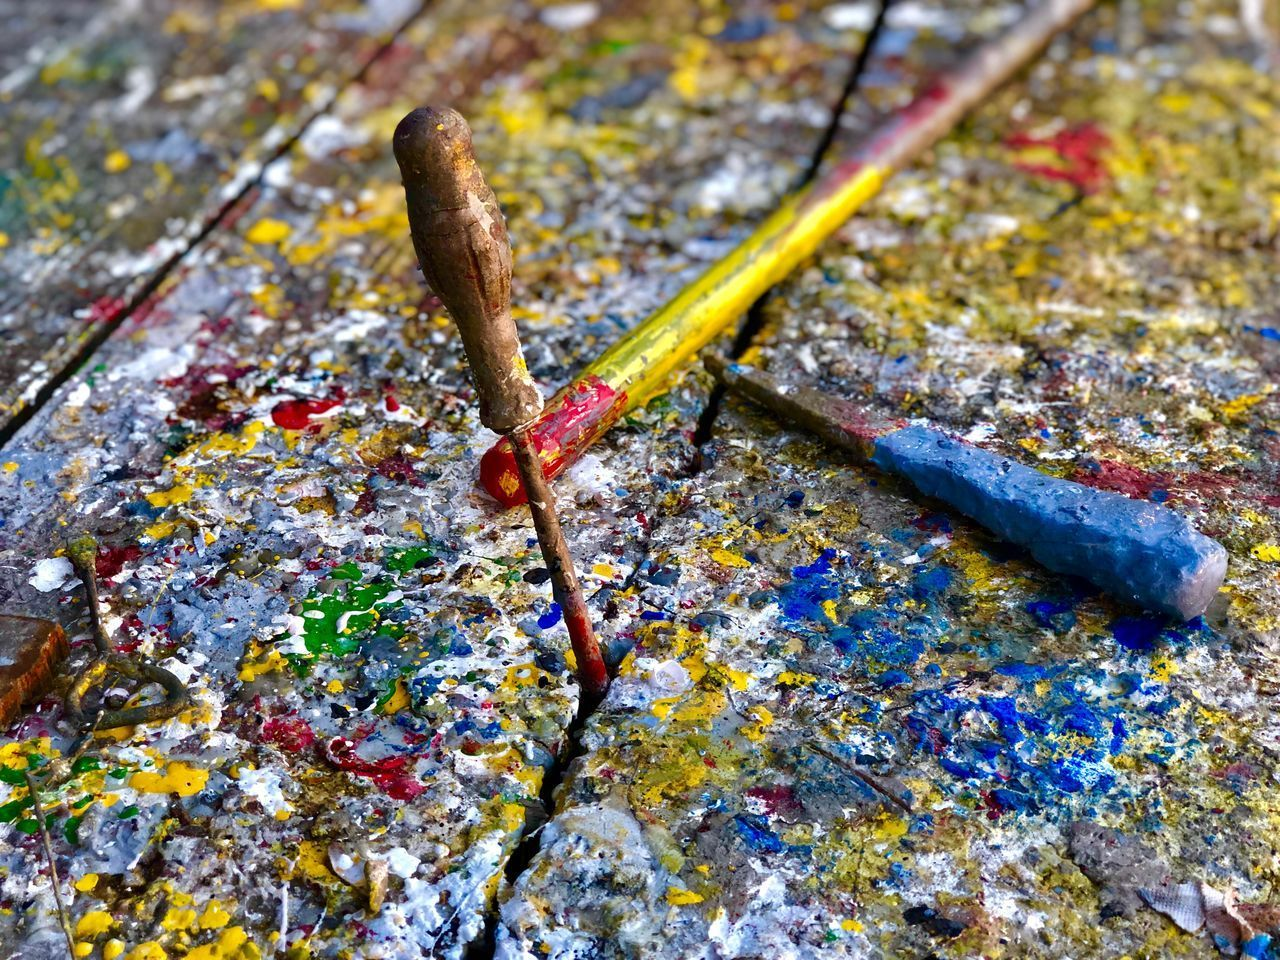 no people, close-up, high angle view, still life, wood - material, day, brush, textured, art and craft, metal, paintbrush, creativity, yellow, paint, focus on foreground, outdoors, messy, nature, multi colored, craft, art and craft equipment